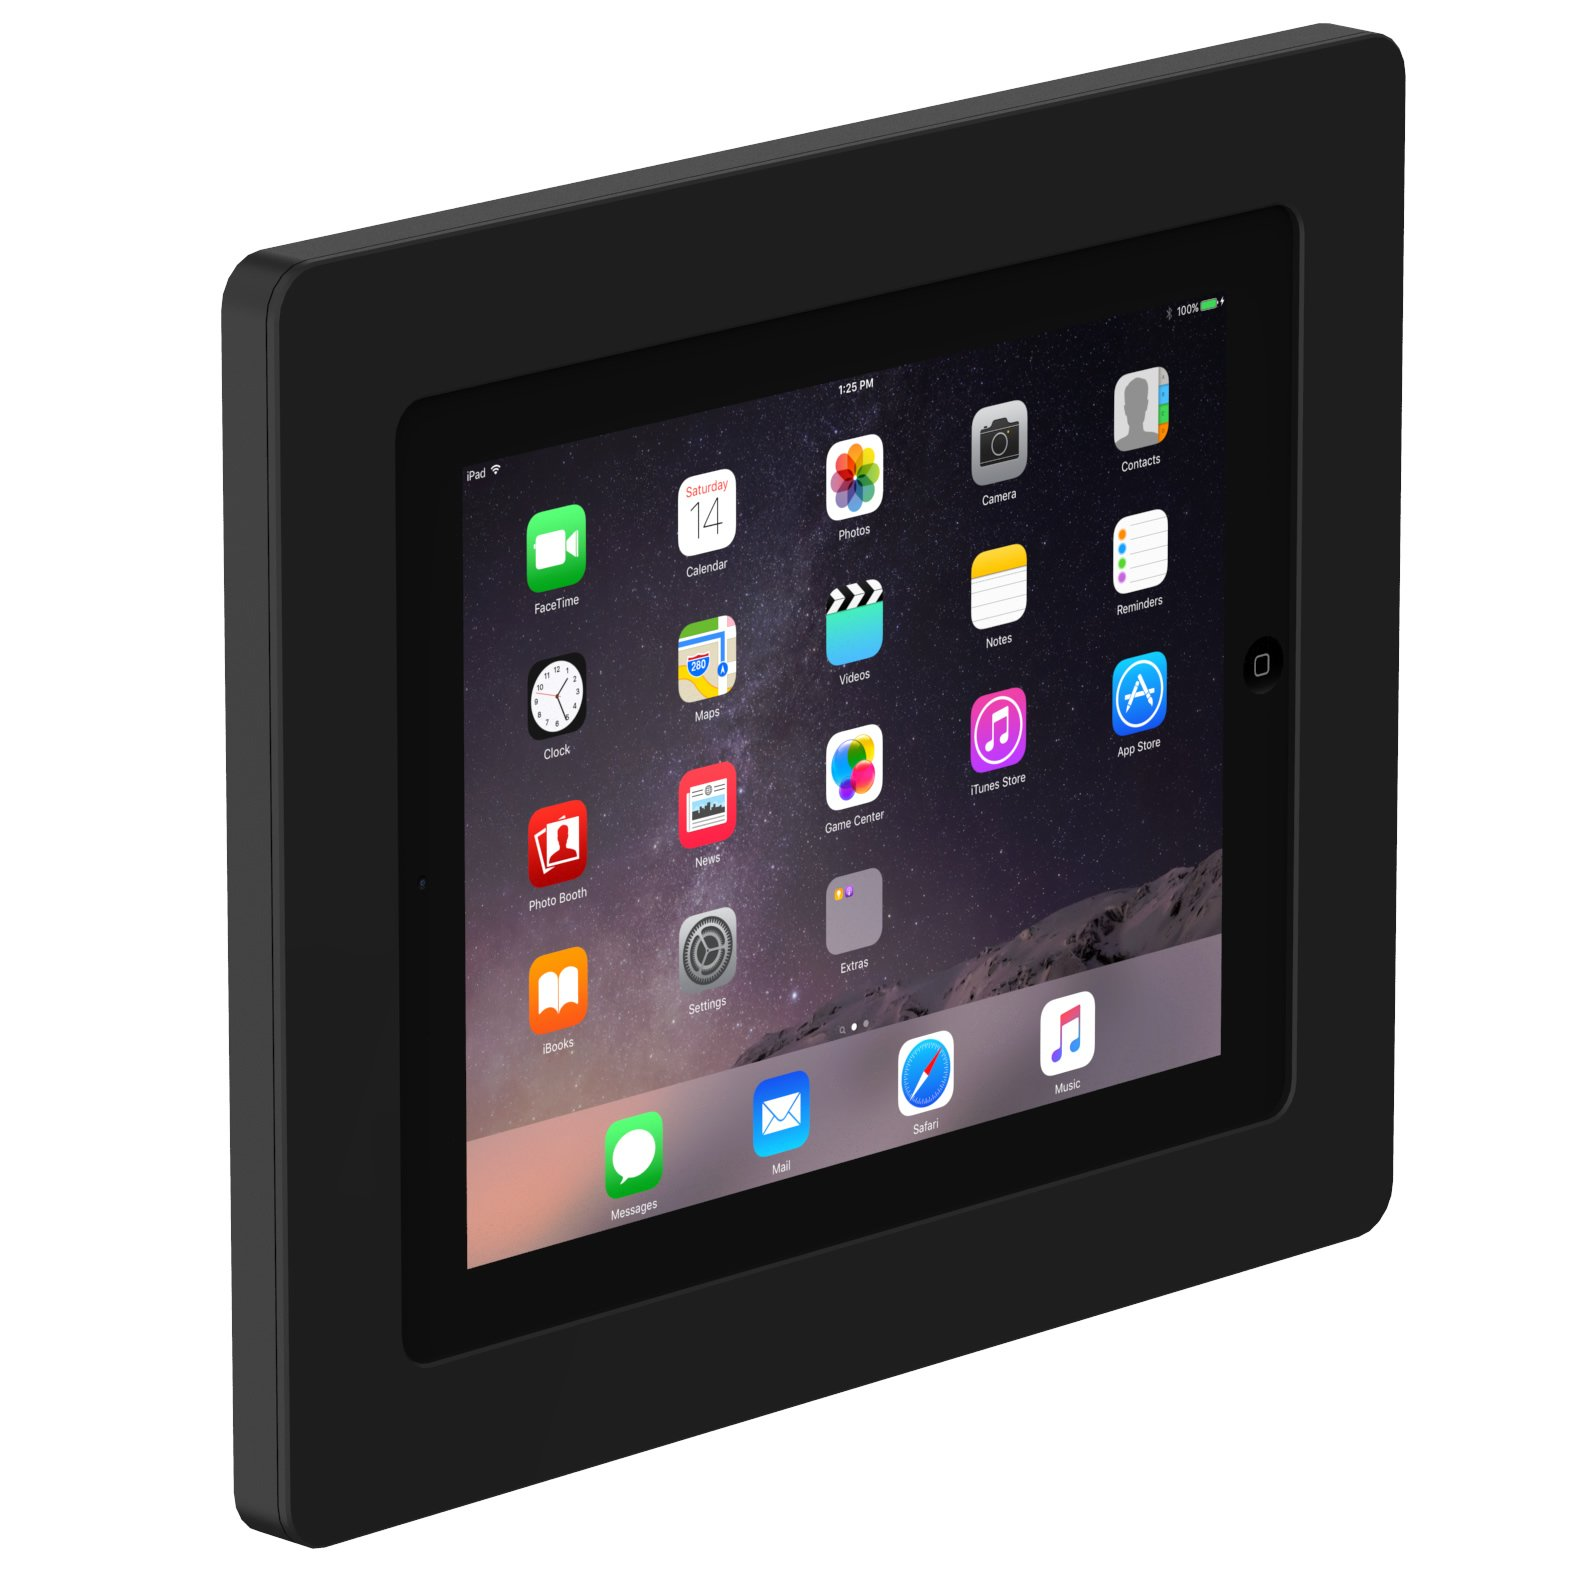 VidaMount On-Wall Tablet Mount - iPad 2/3/4 - Black